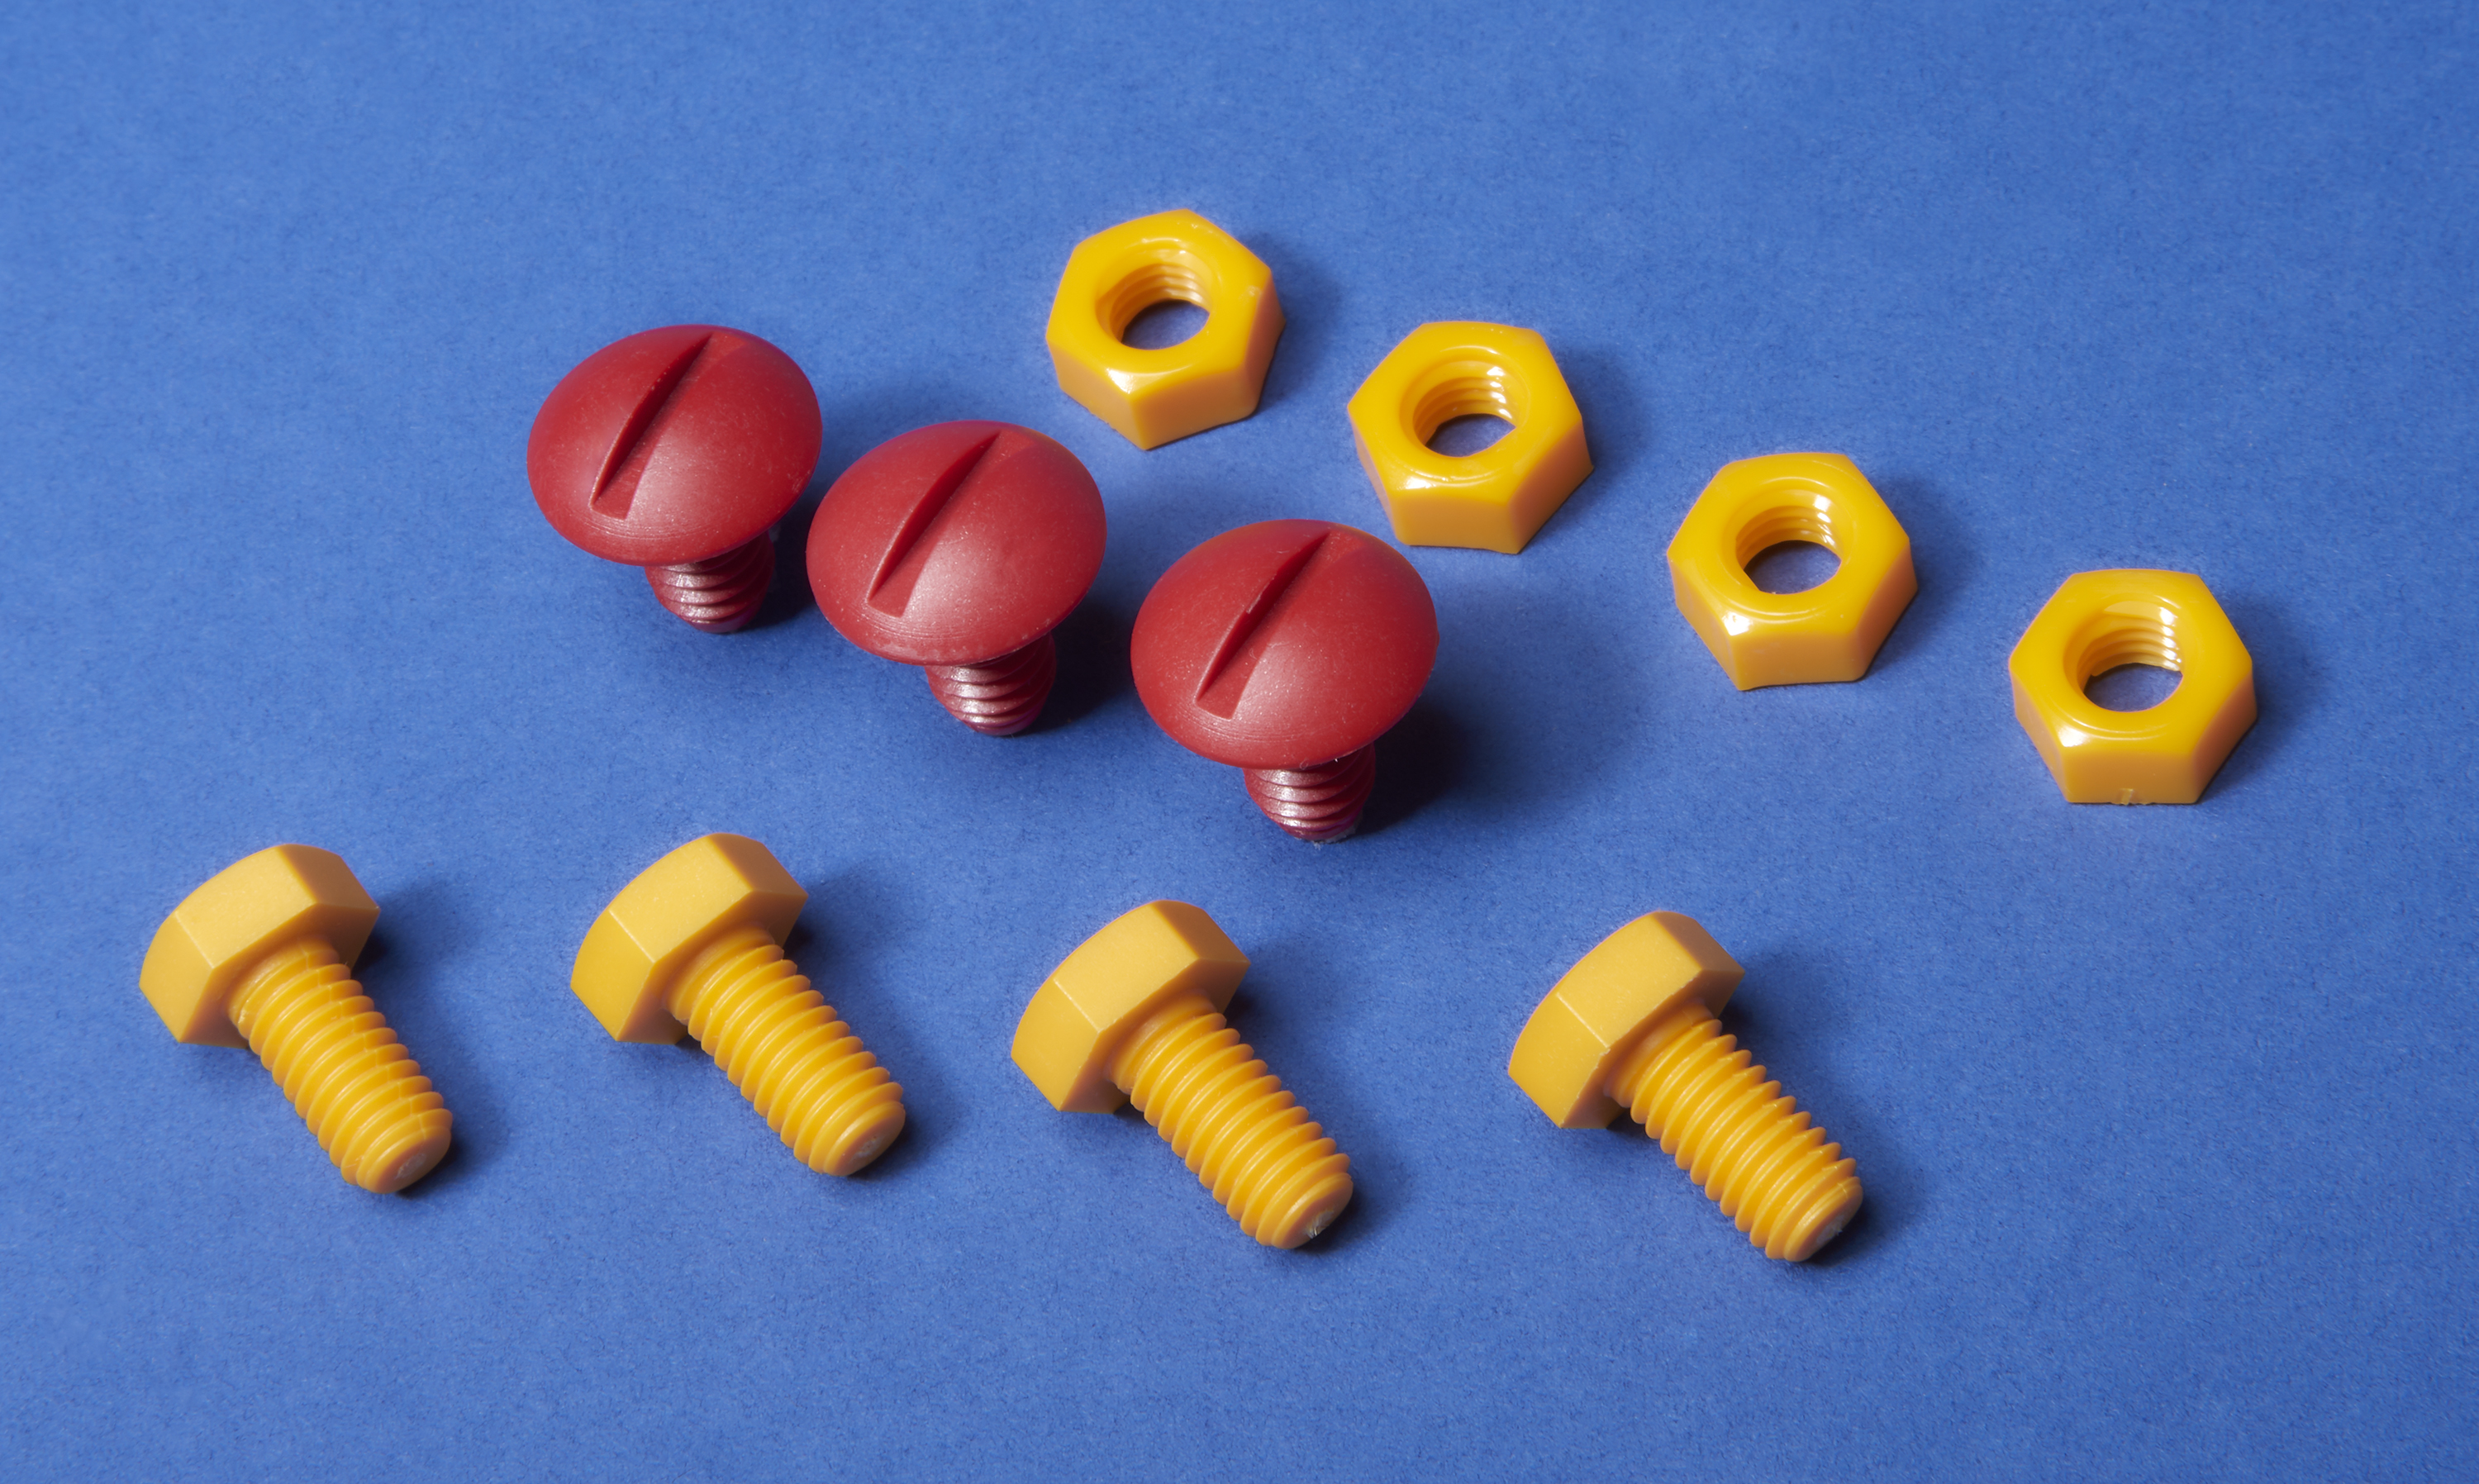 Nylon screws and hex nuts